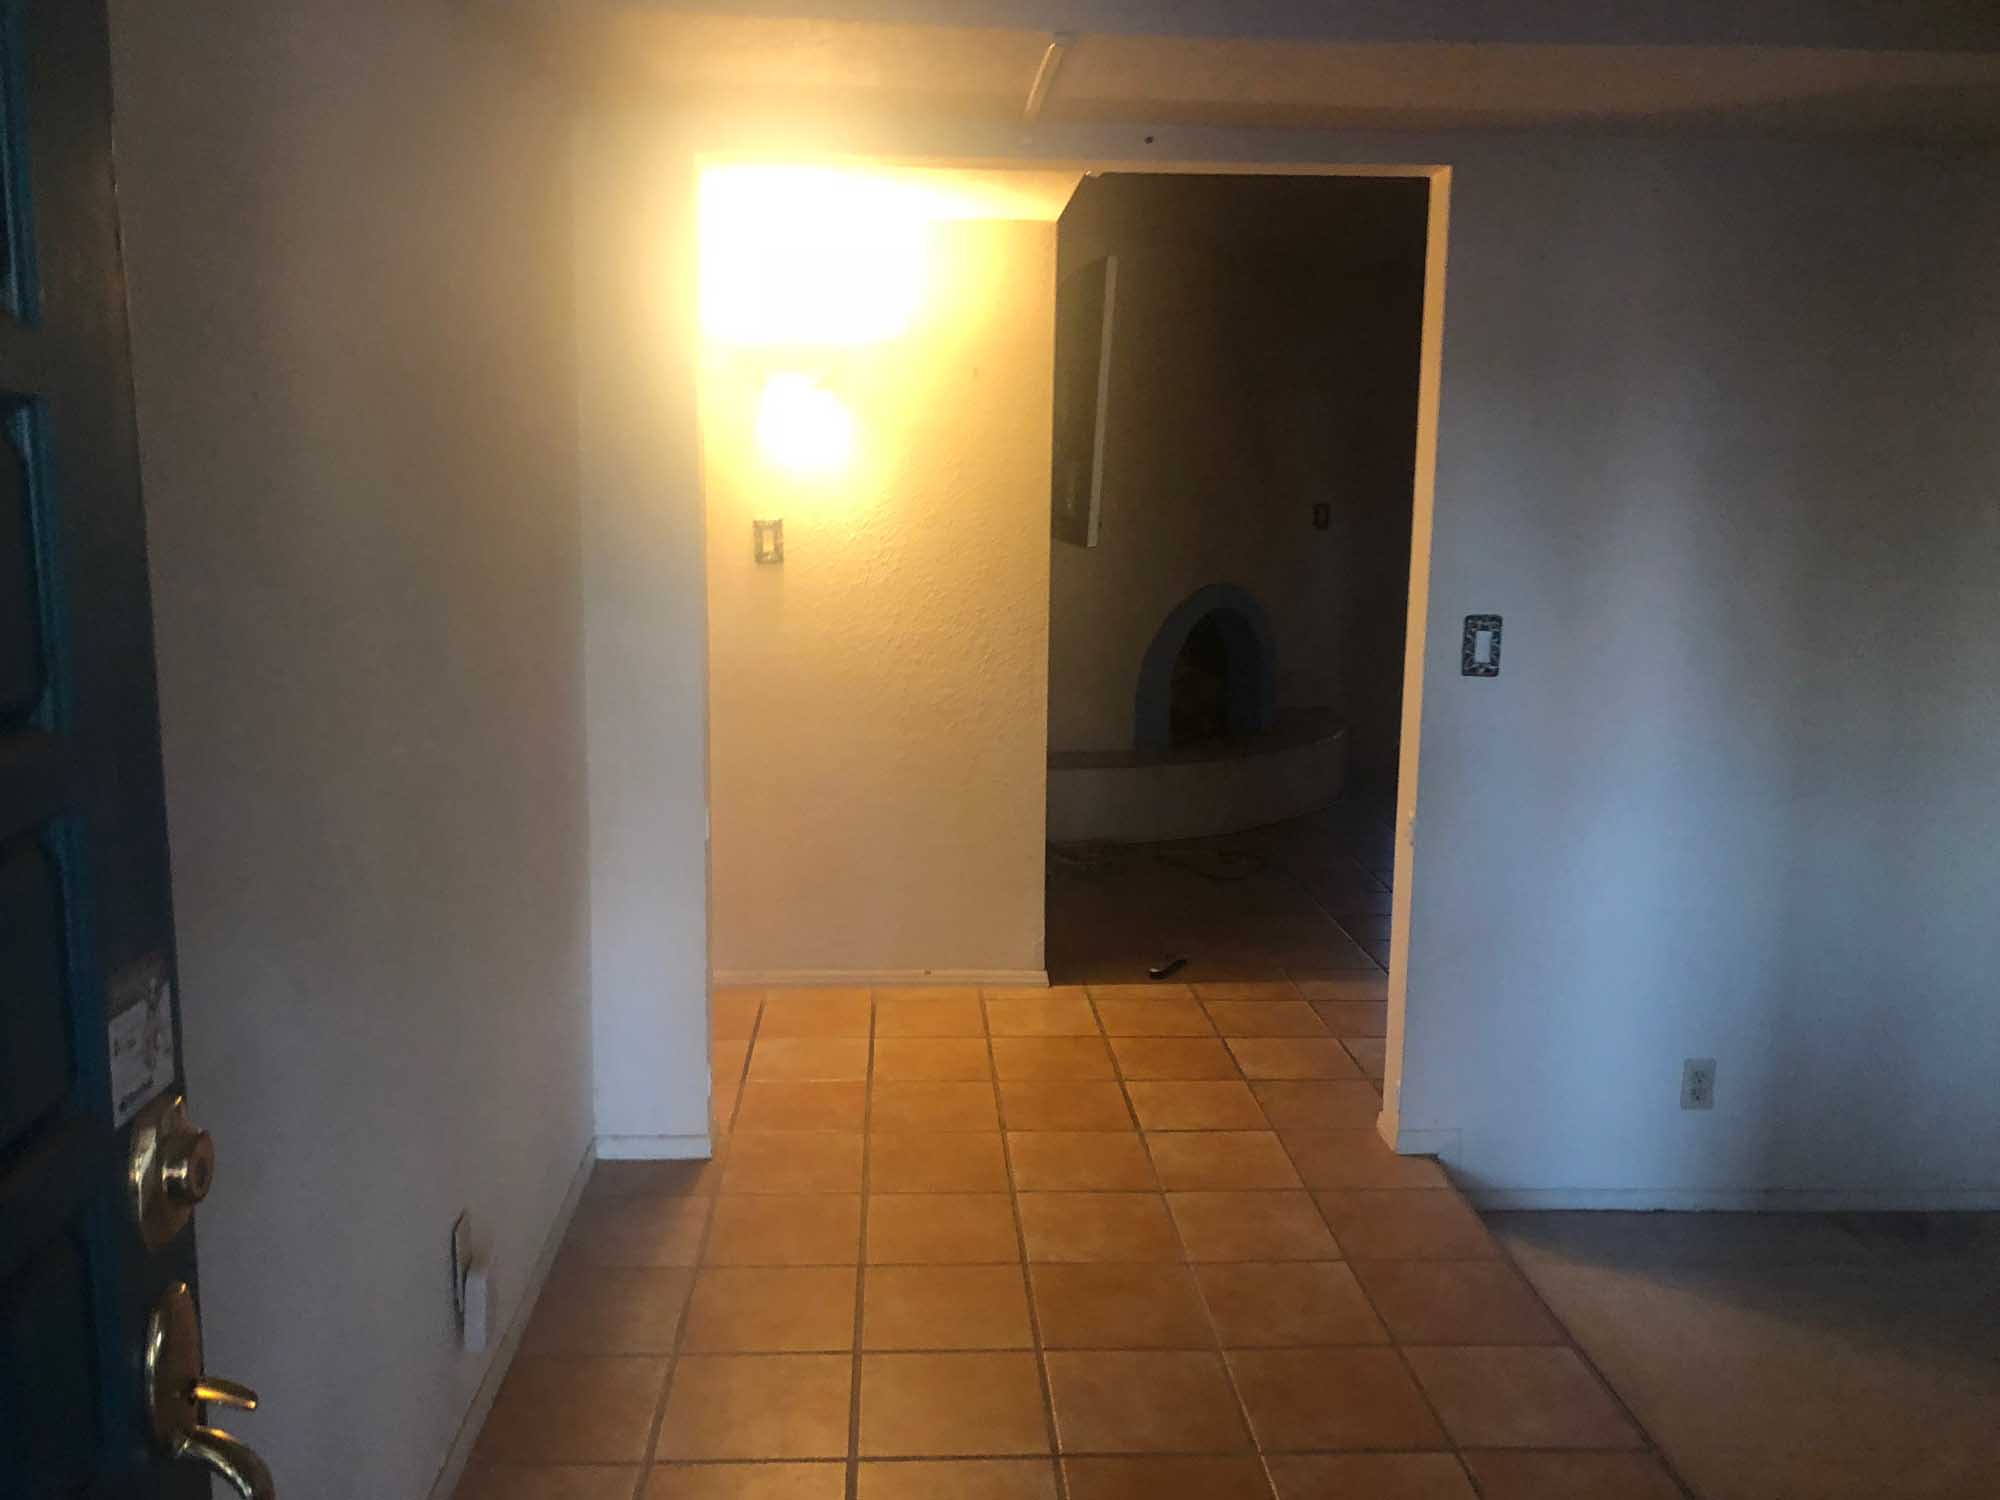 Old entryway with tile floor